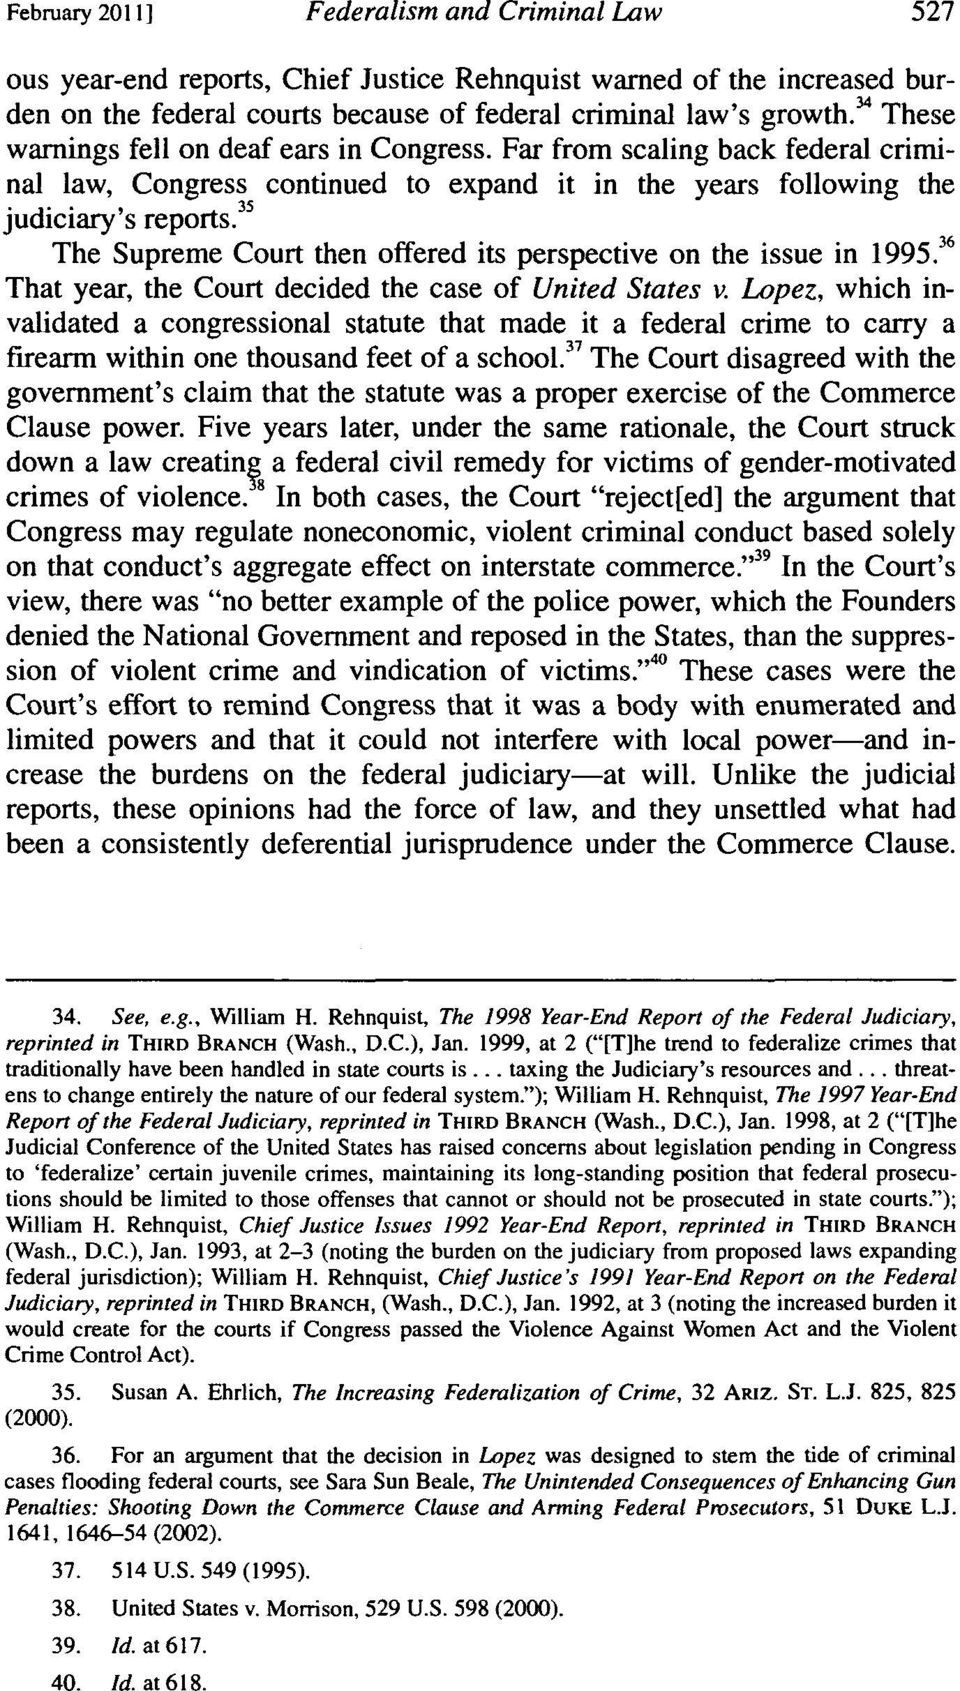 an analysis of the violence against women act in the commerce clause of the united states constituti United states constitution's 'commerce clause' was at  of australia constitution bill to a gendered analysis  united states violence against women act.